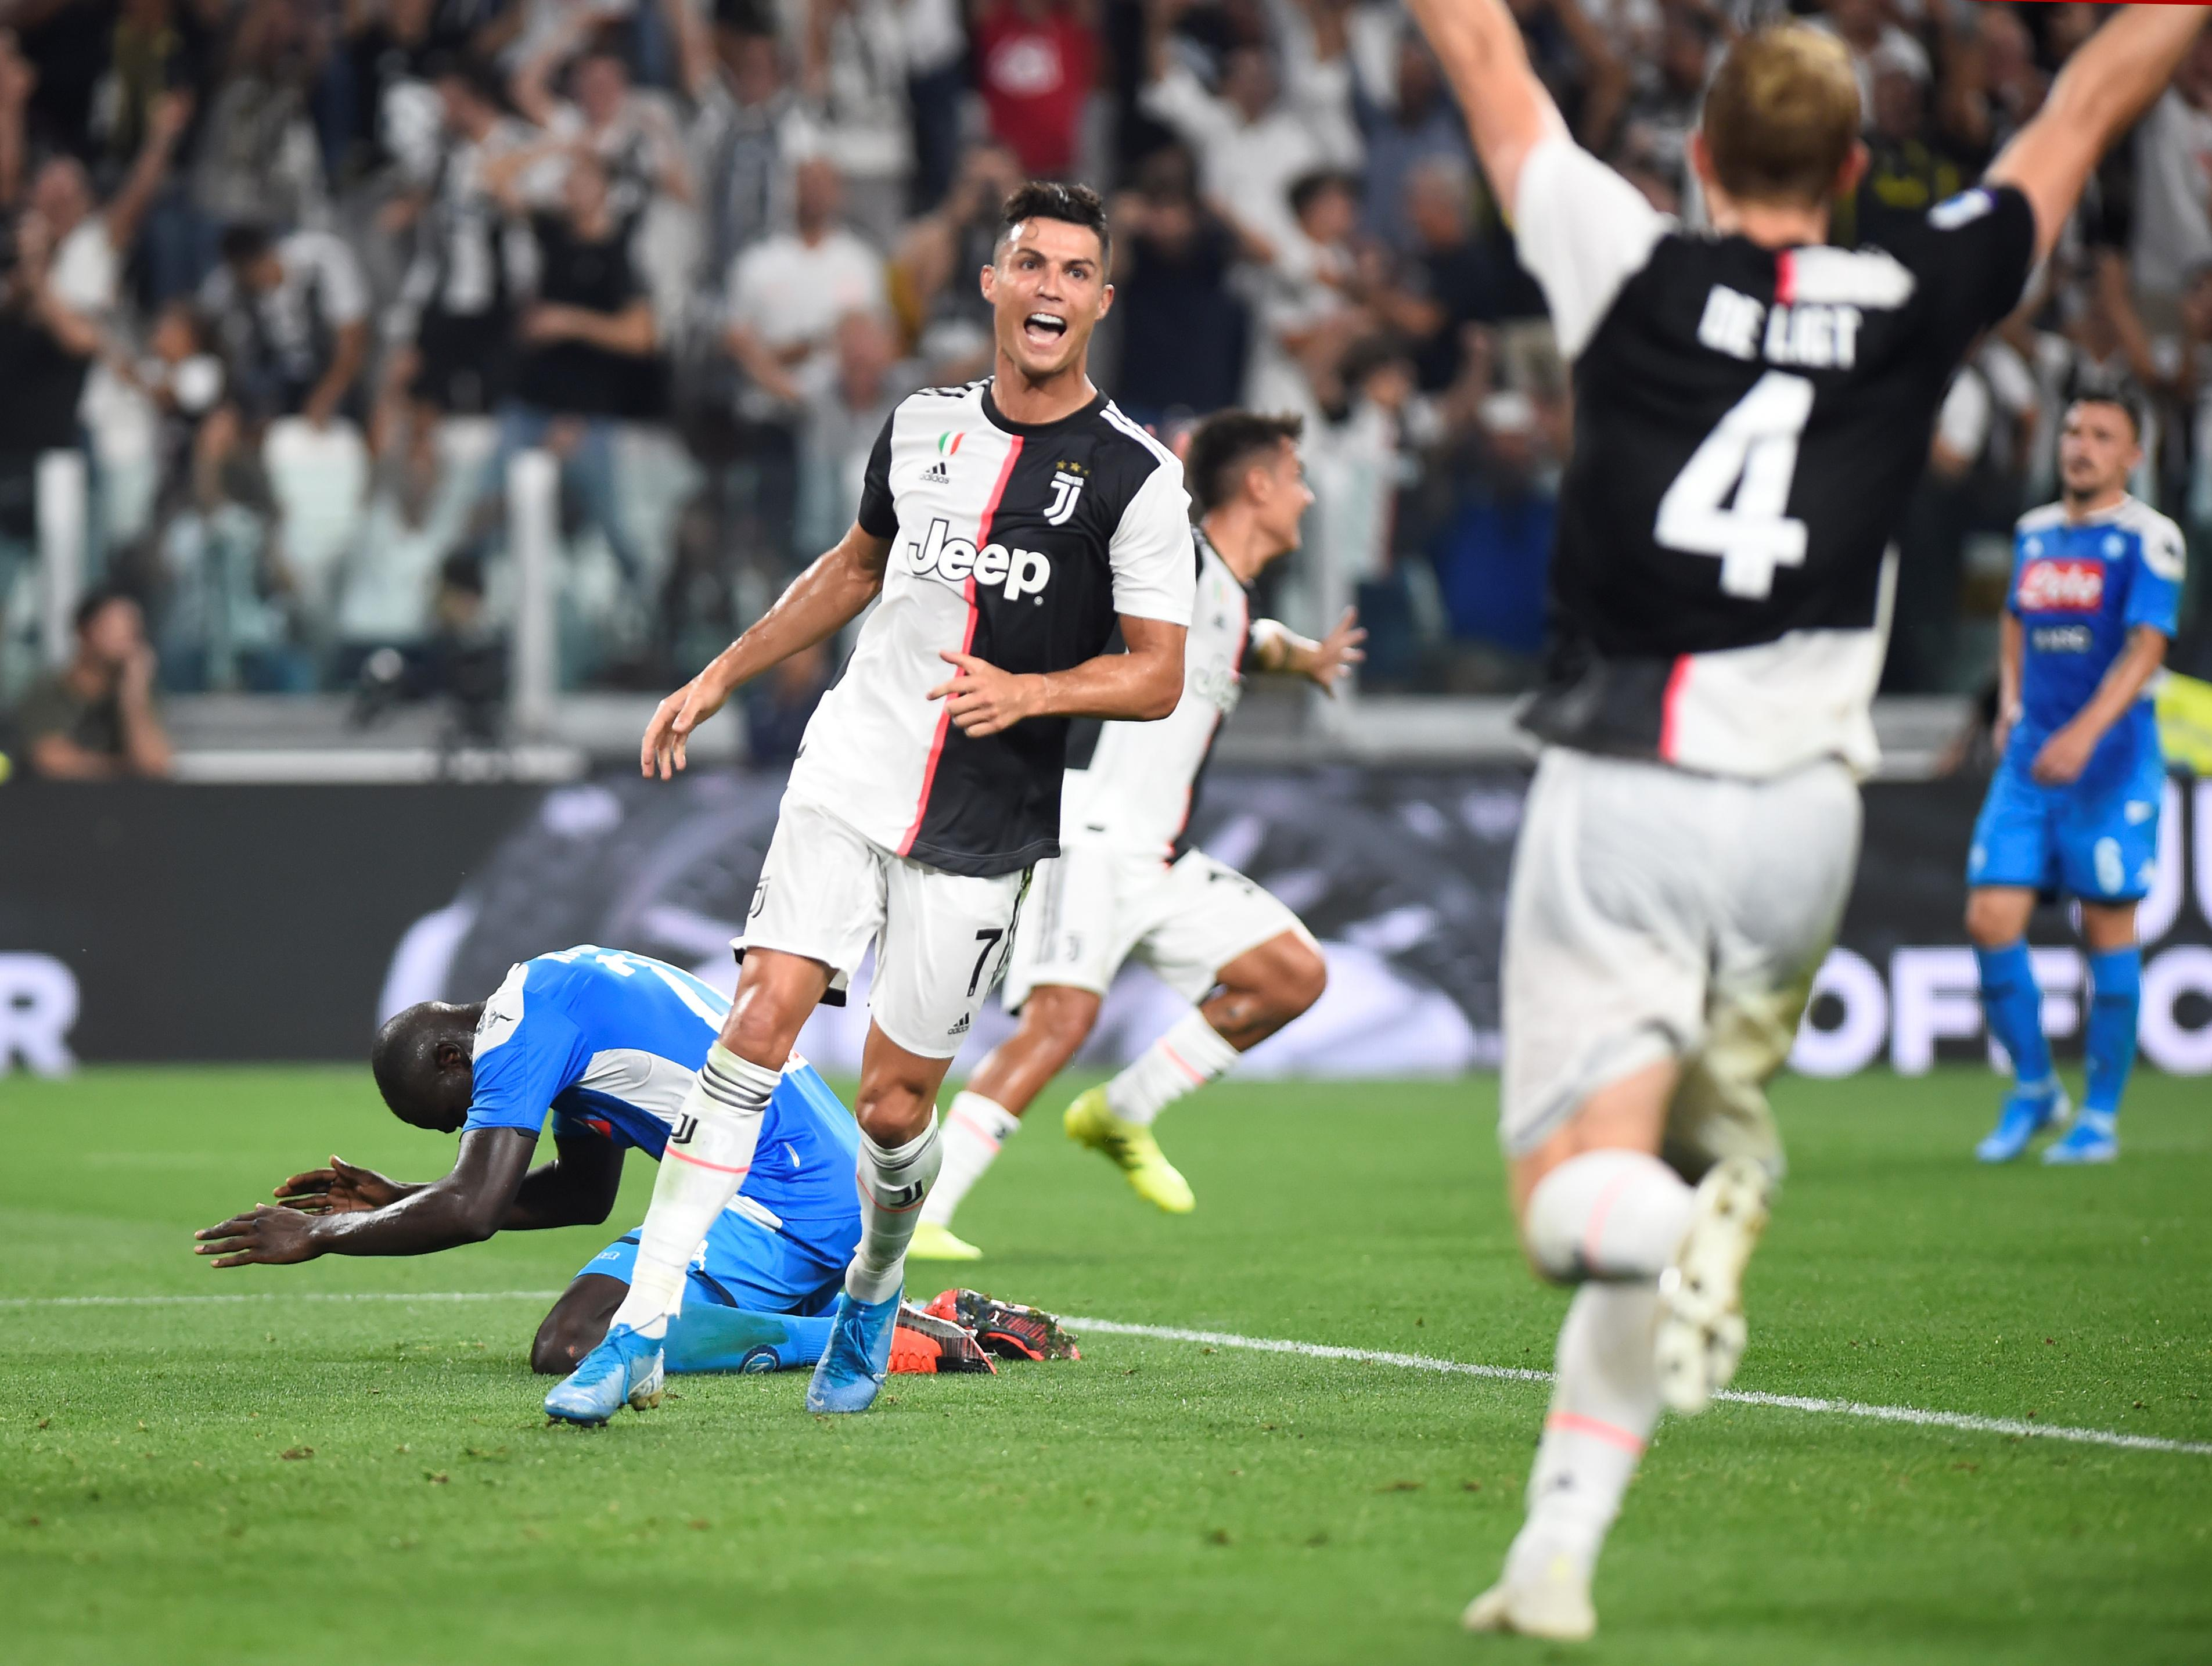 Koulibaly own goal hands Juventus dramatic win to ruin Napoli comeback